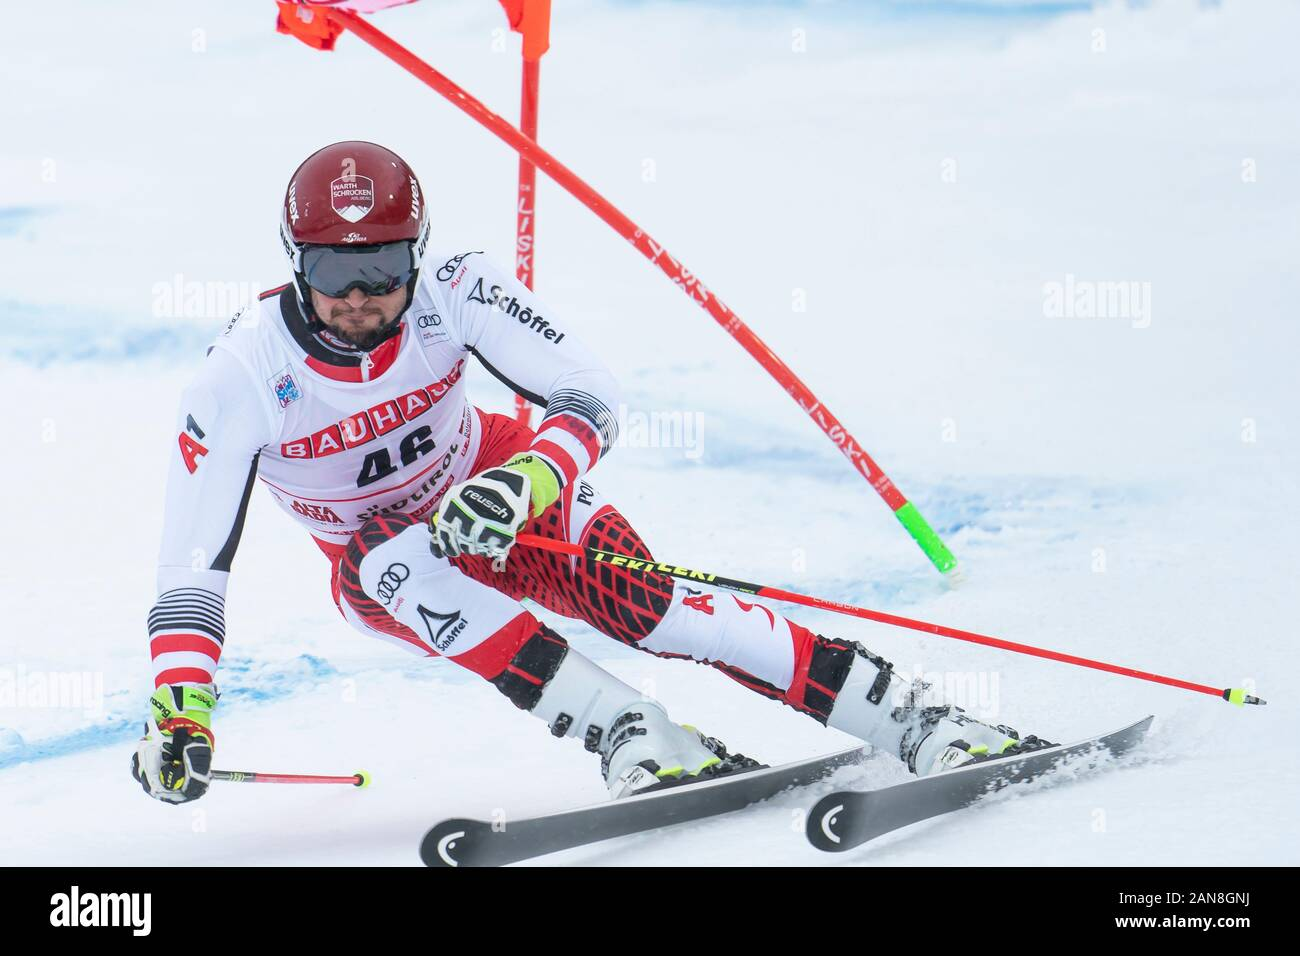 Alta Badia, Italy 22 December 2019. STROLZ Johannes (Aut) competing in the Audi Fis Alpine Skiing World Cup Men's Giant Slalom on the Gran Risa Course Stock Photo